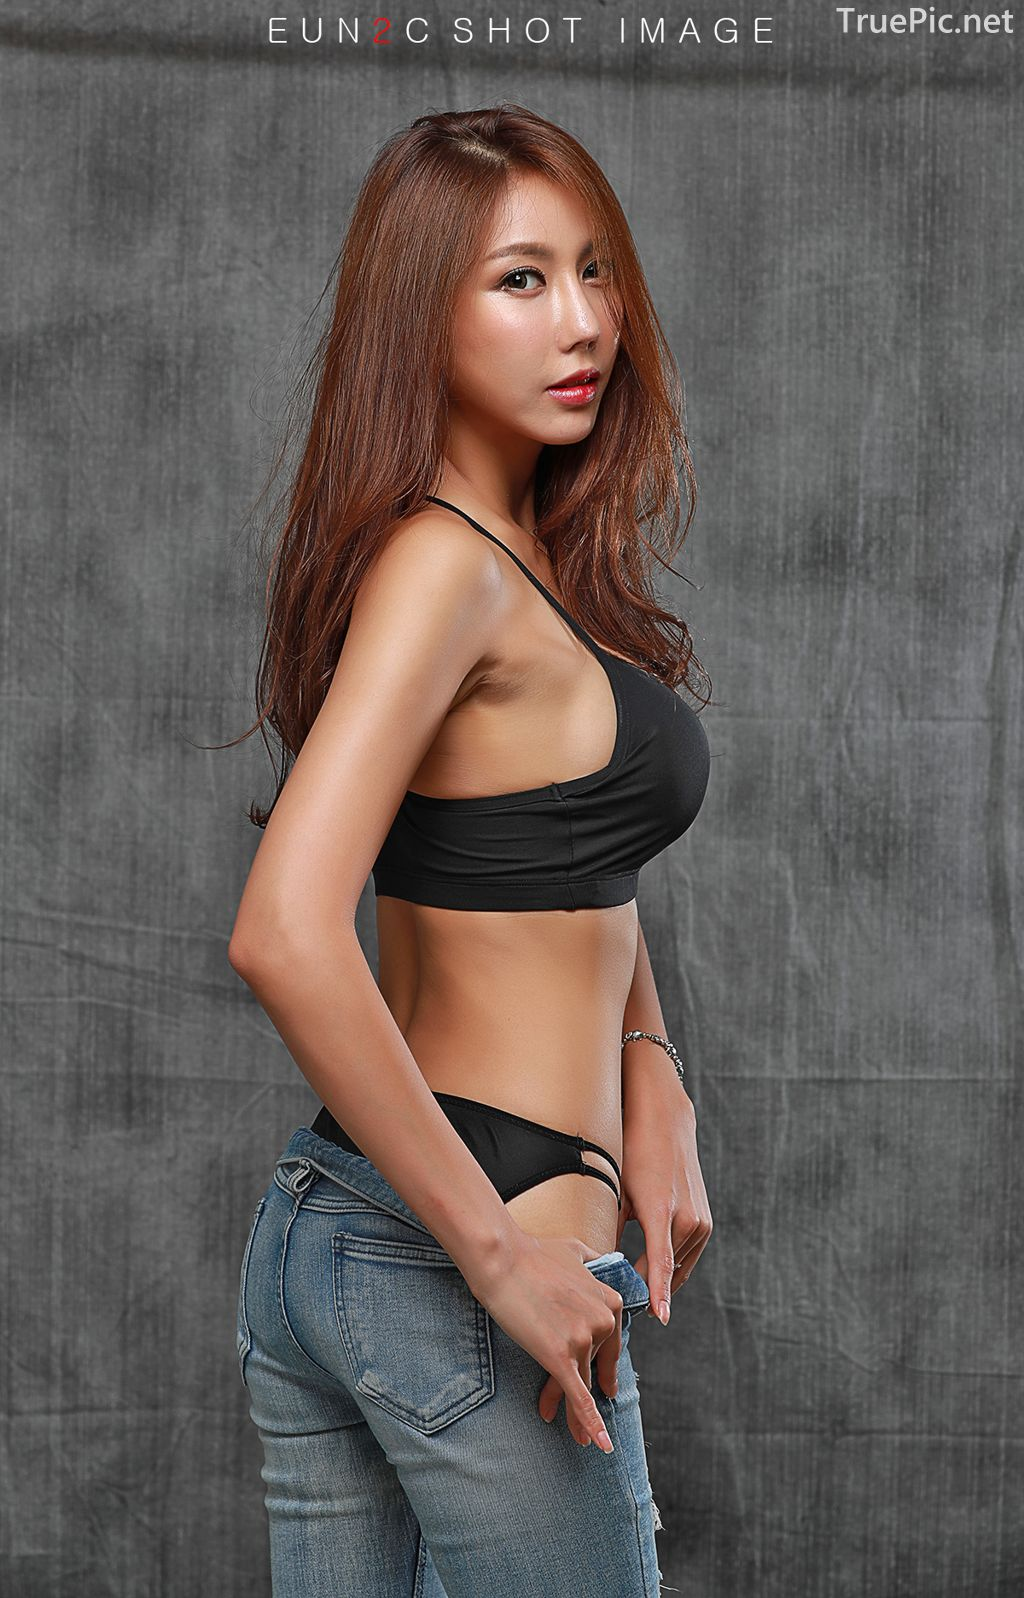 Image-Korean-model-Choi-Ye-Rok-Back-Lingerie-and-Jean-TruePic.net- Picture-9